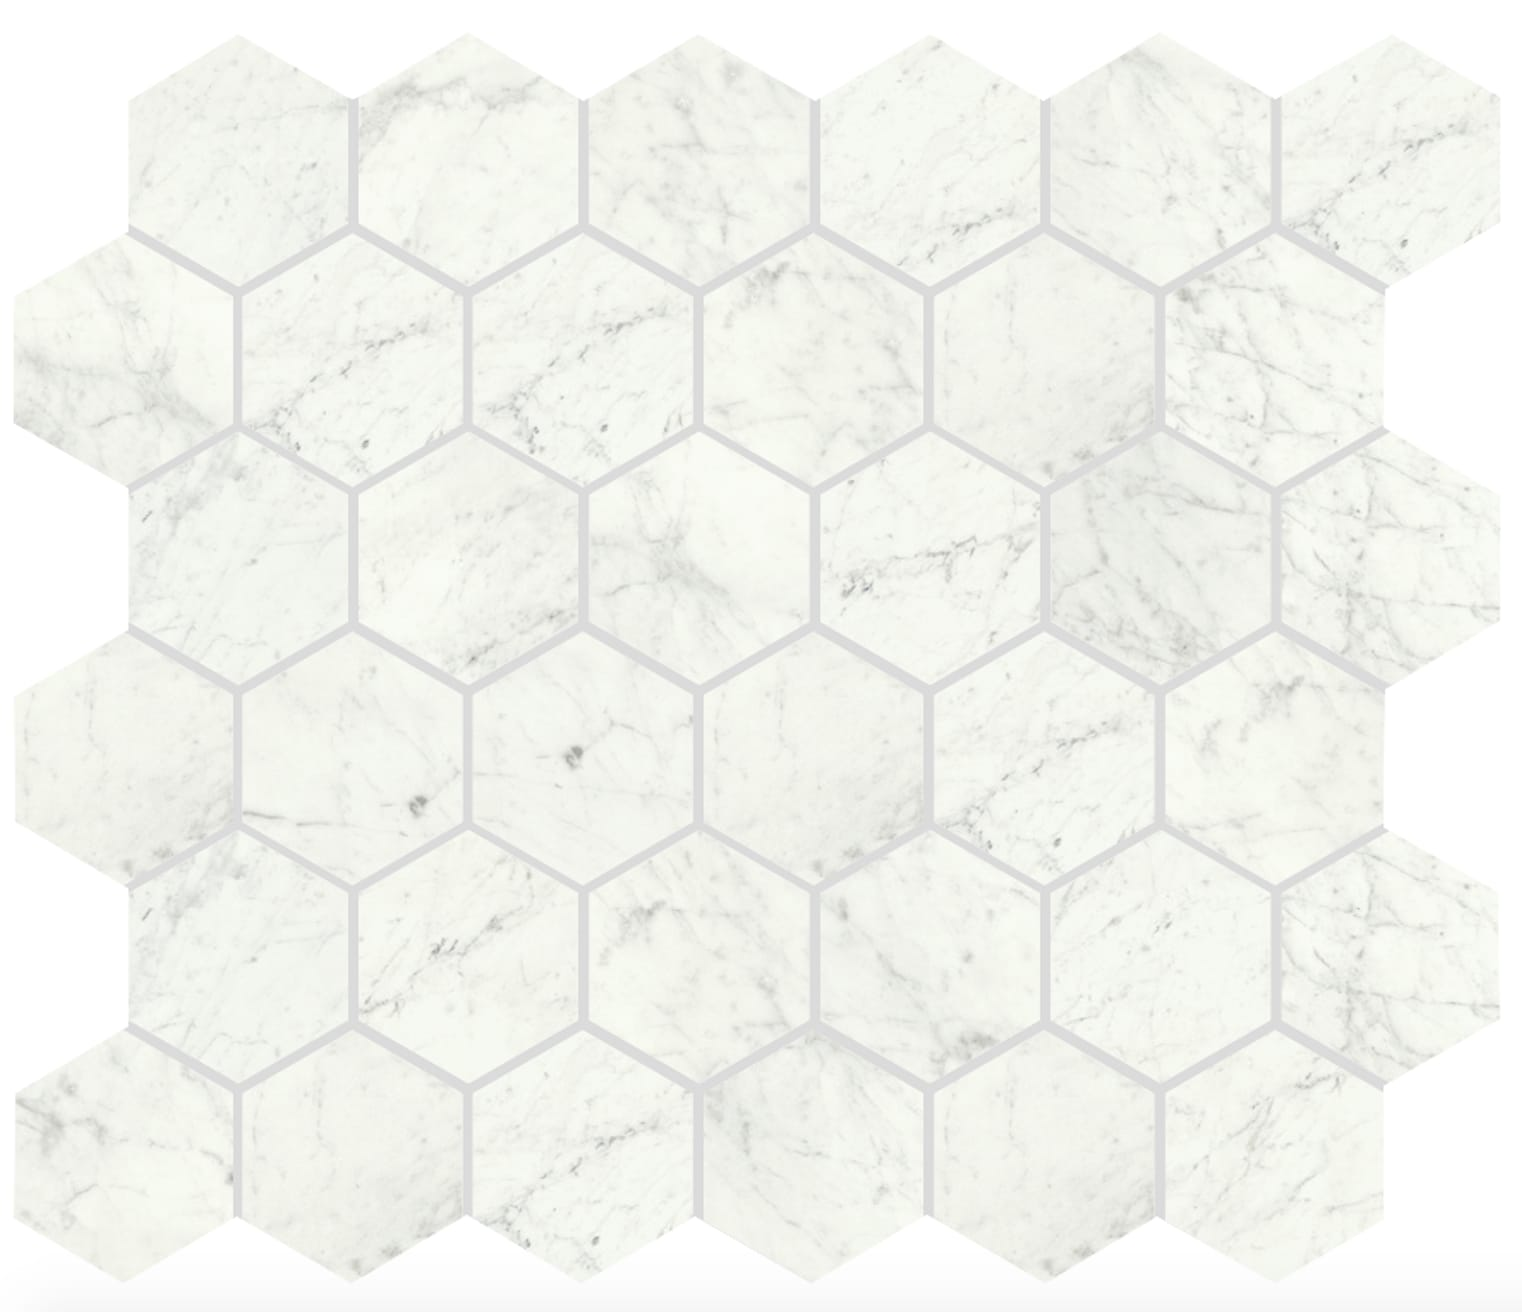 Shining Carrara Vit Blank Hexagon 6x5 cm